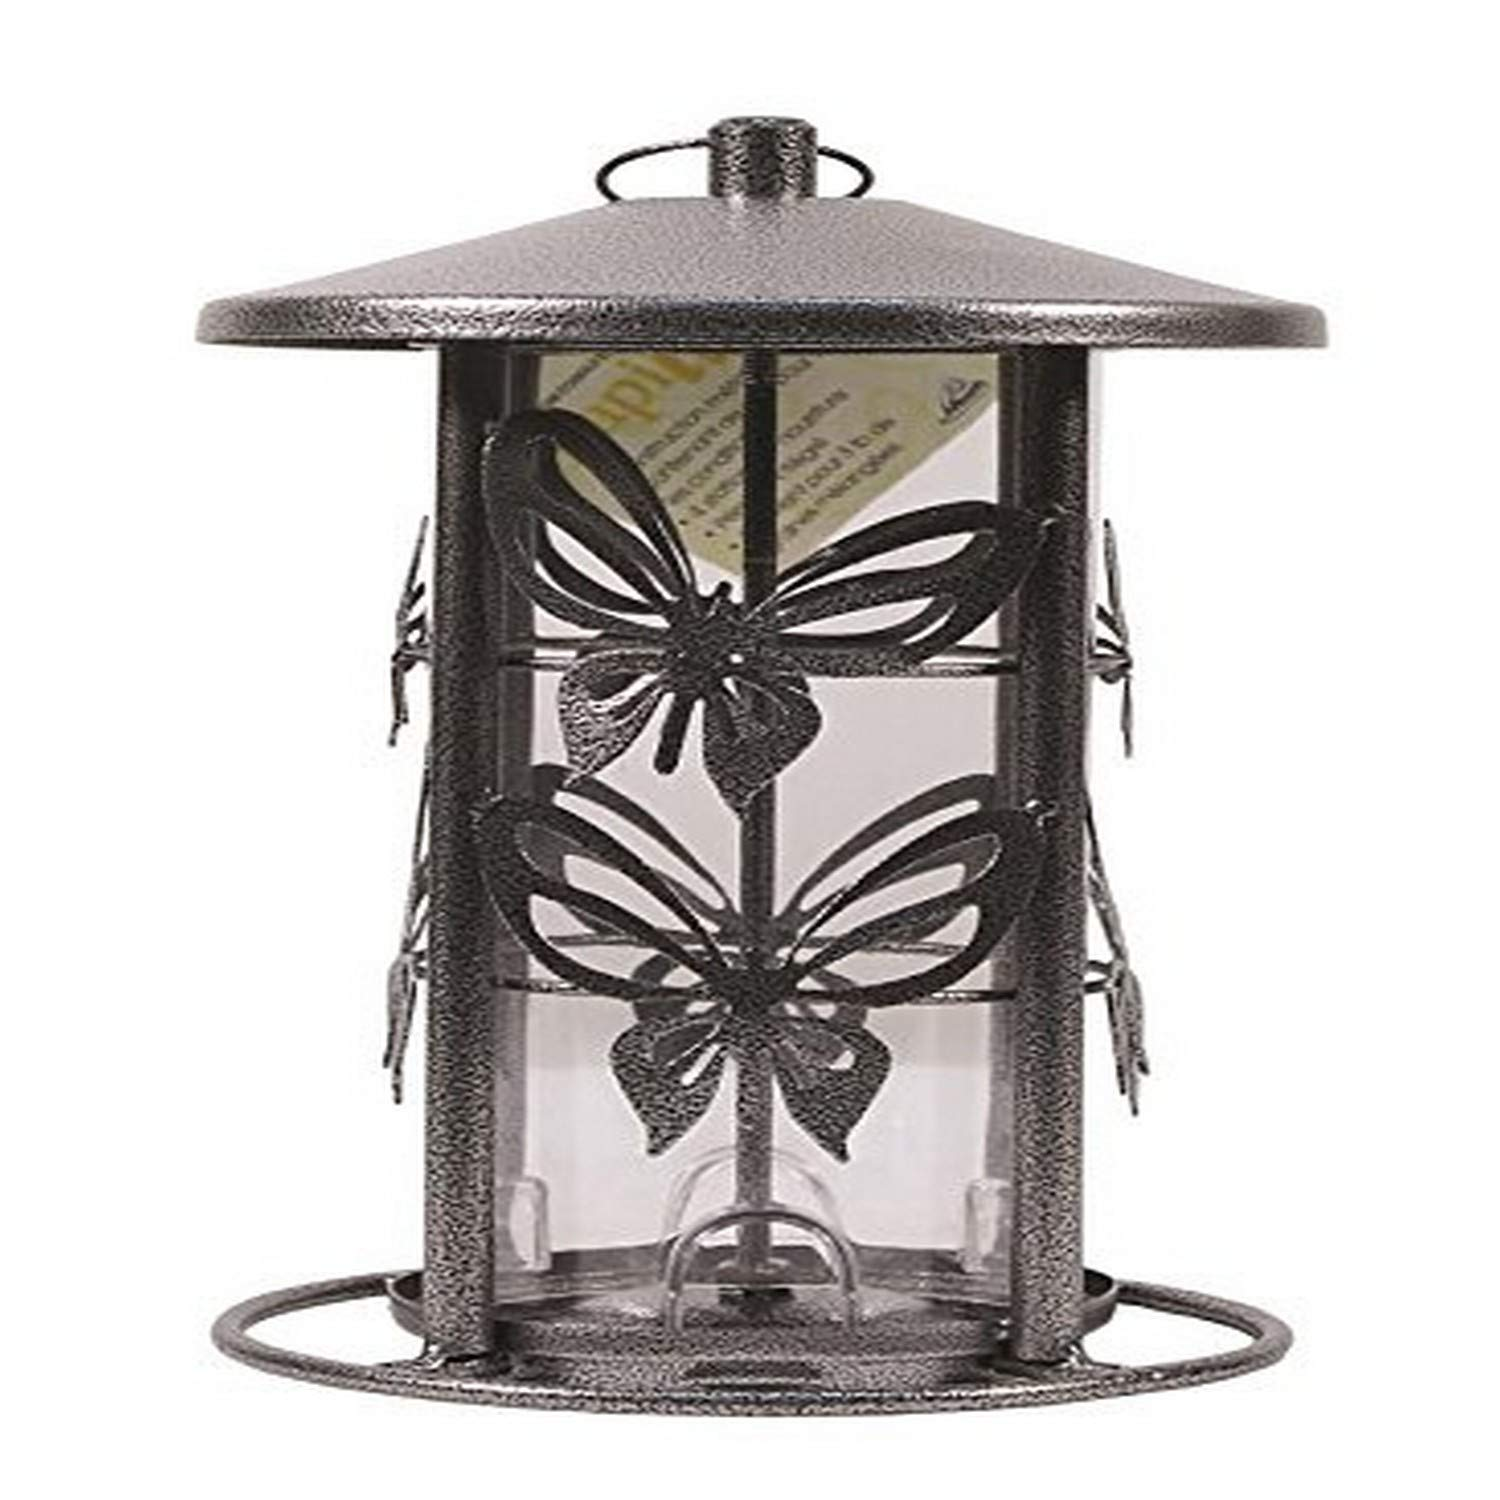 Wild Bird Feeder, 3-Pound Butterfly Seed Capacity